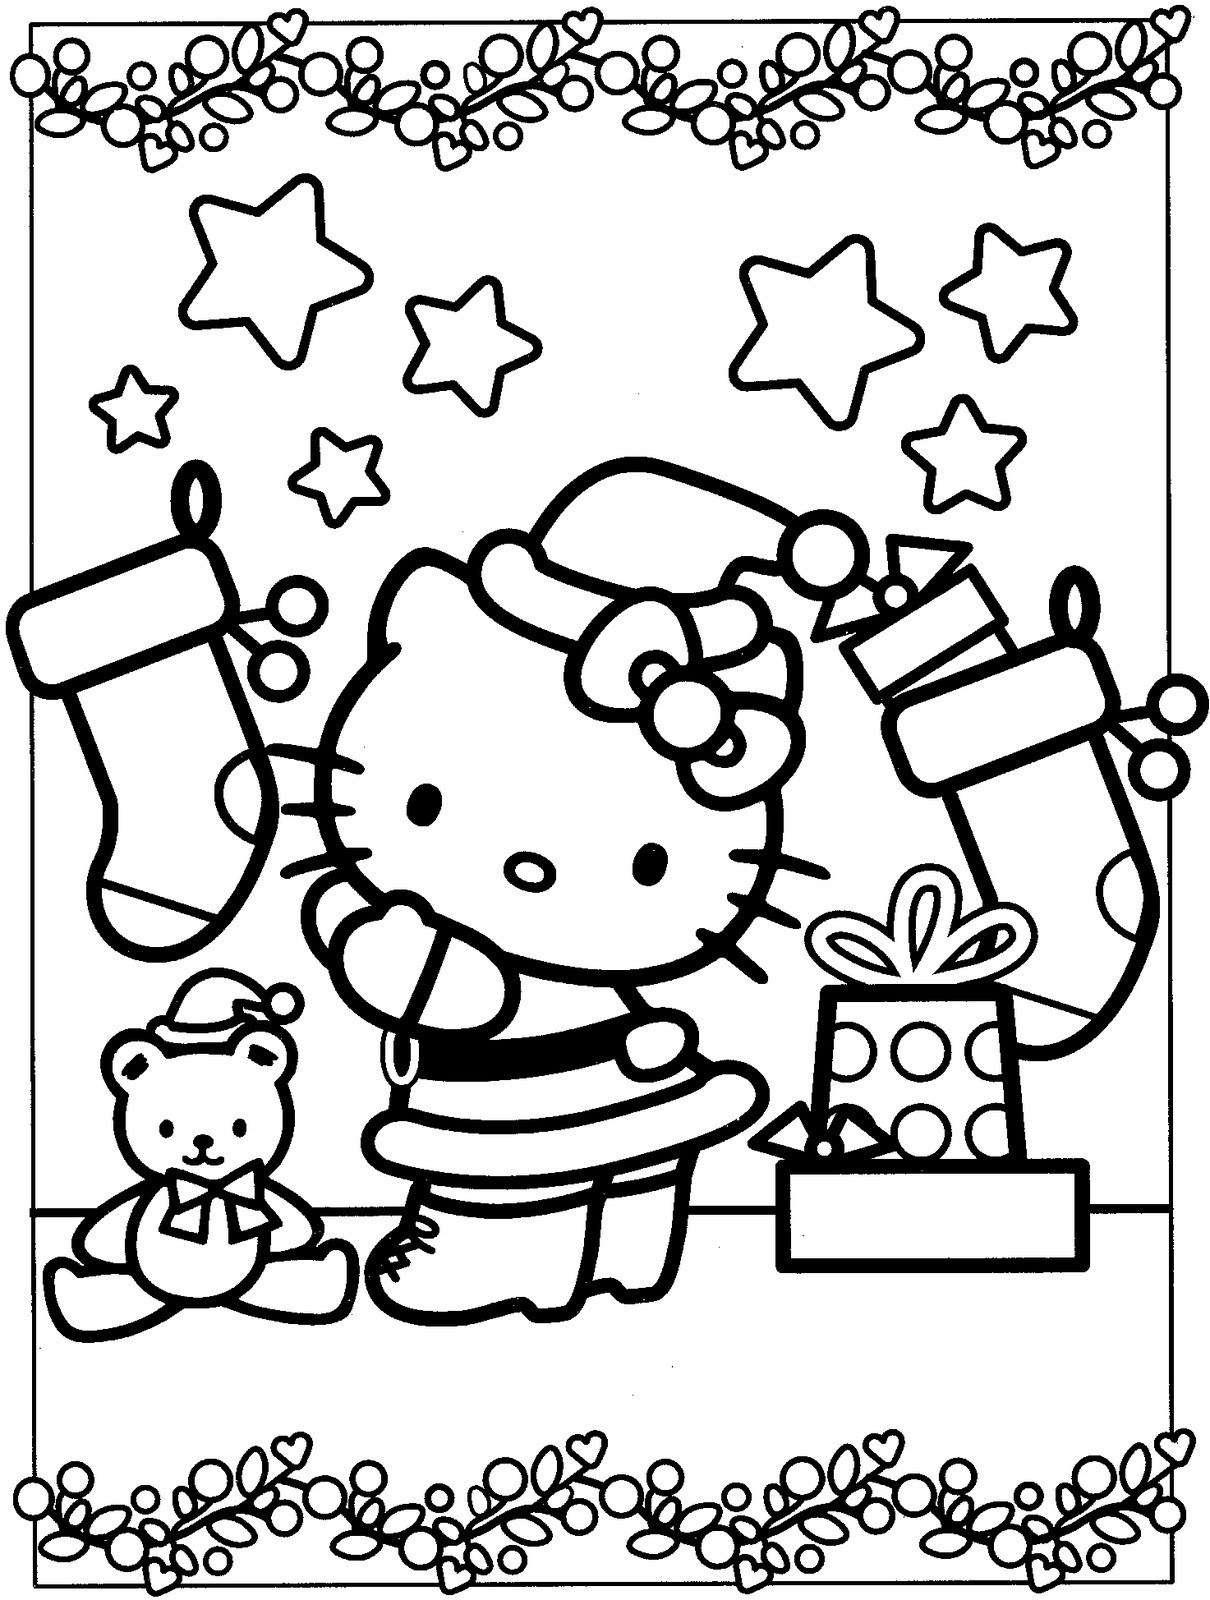 Merry Christmas Splat Coloring Pages With The Cat